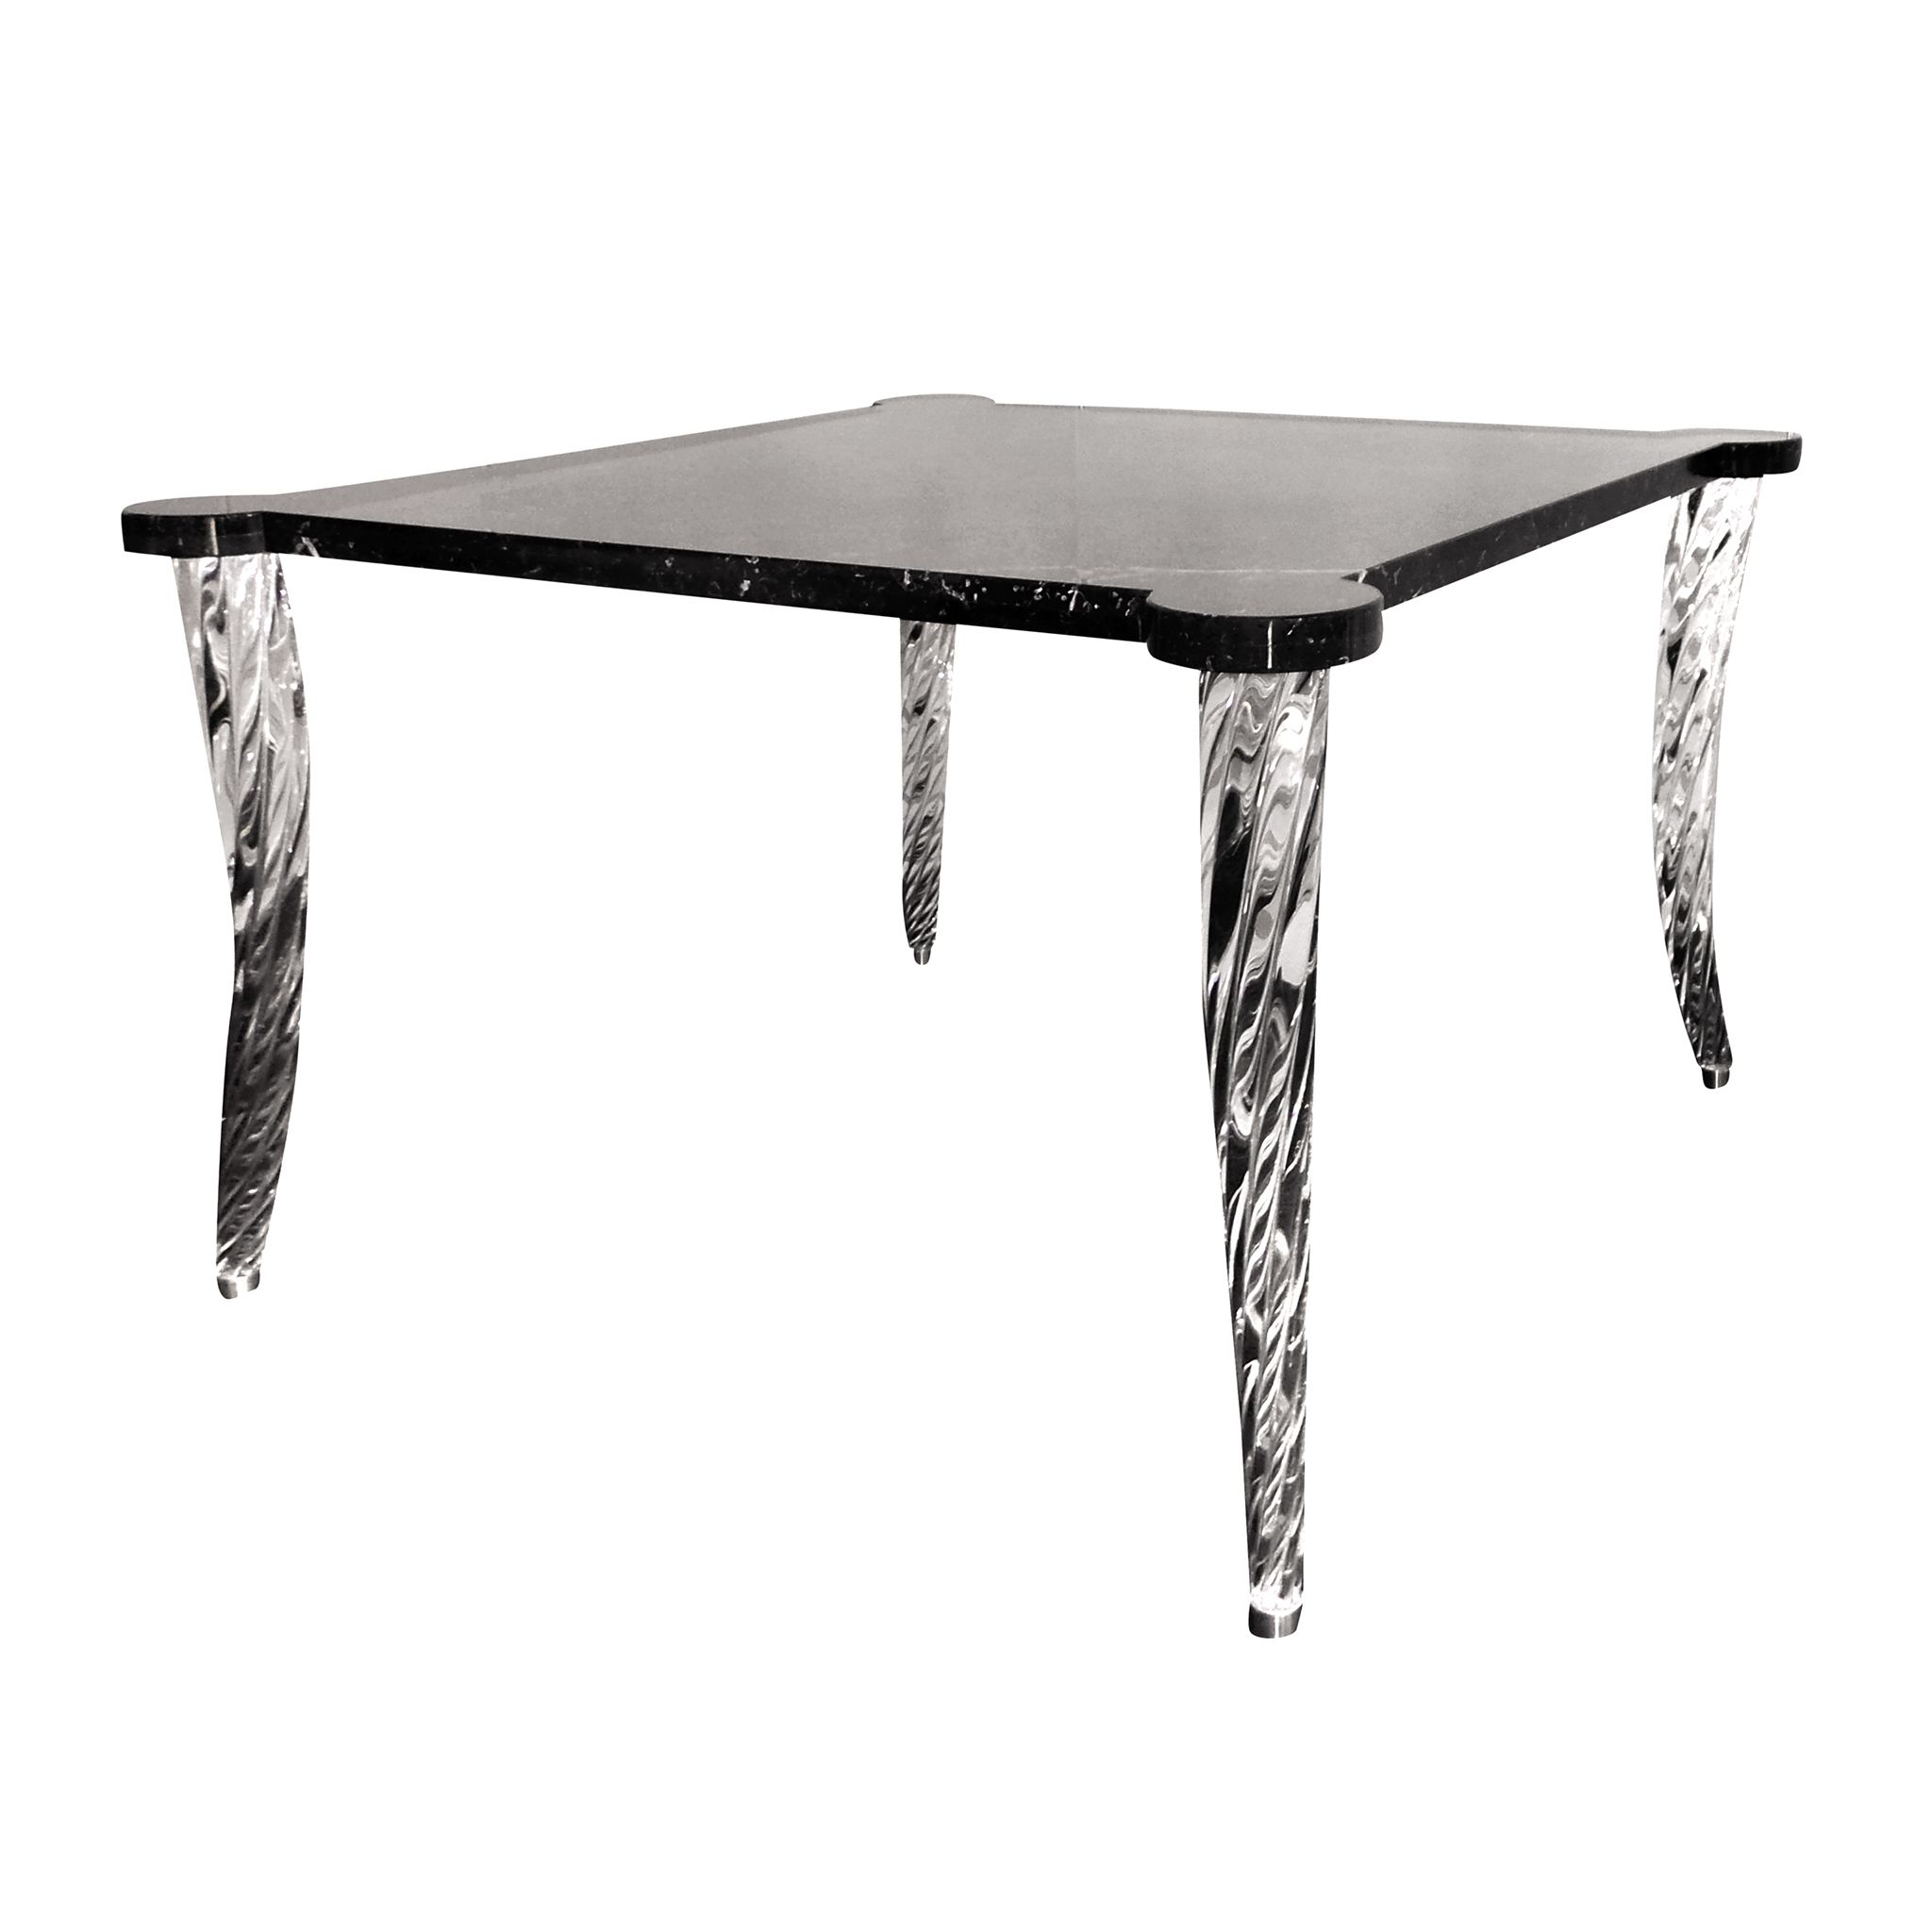 Eclisse table - Murano glass and Dark Marquinia marble - Italy